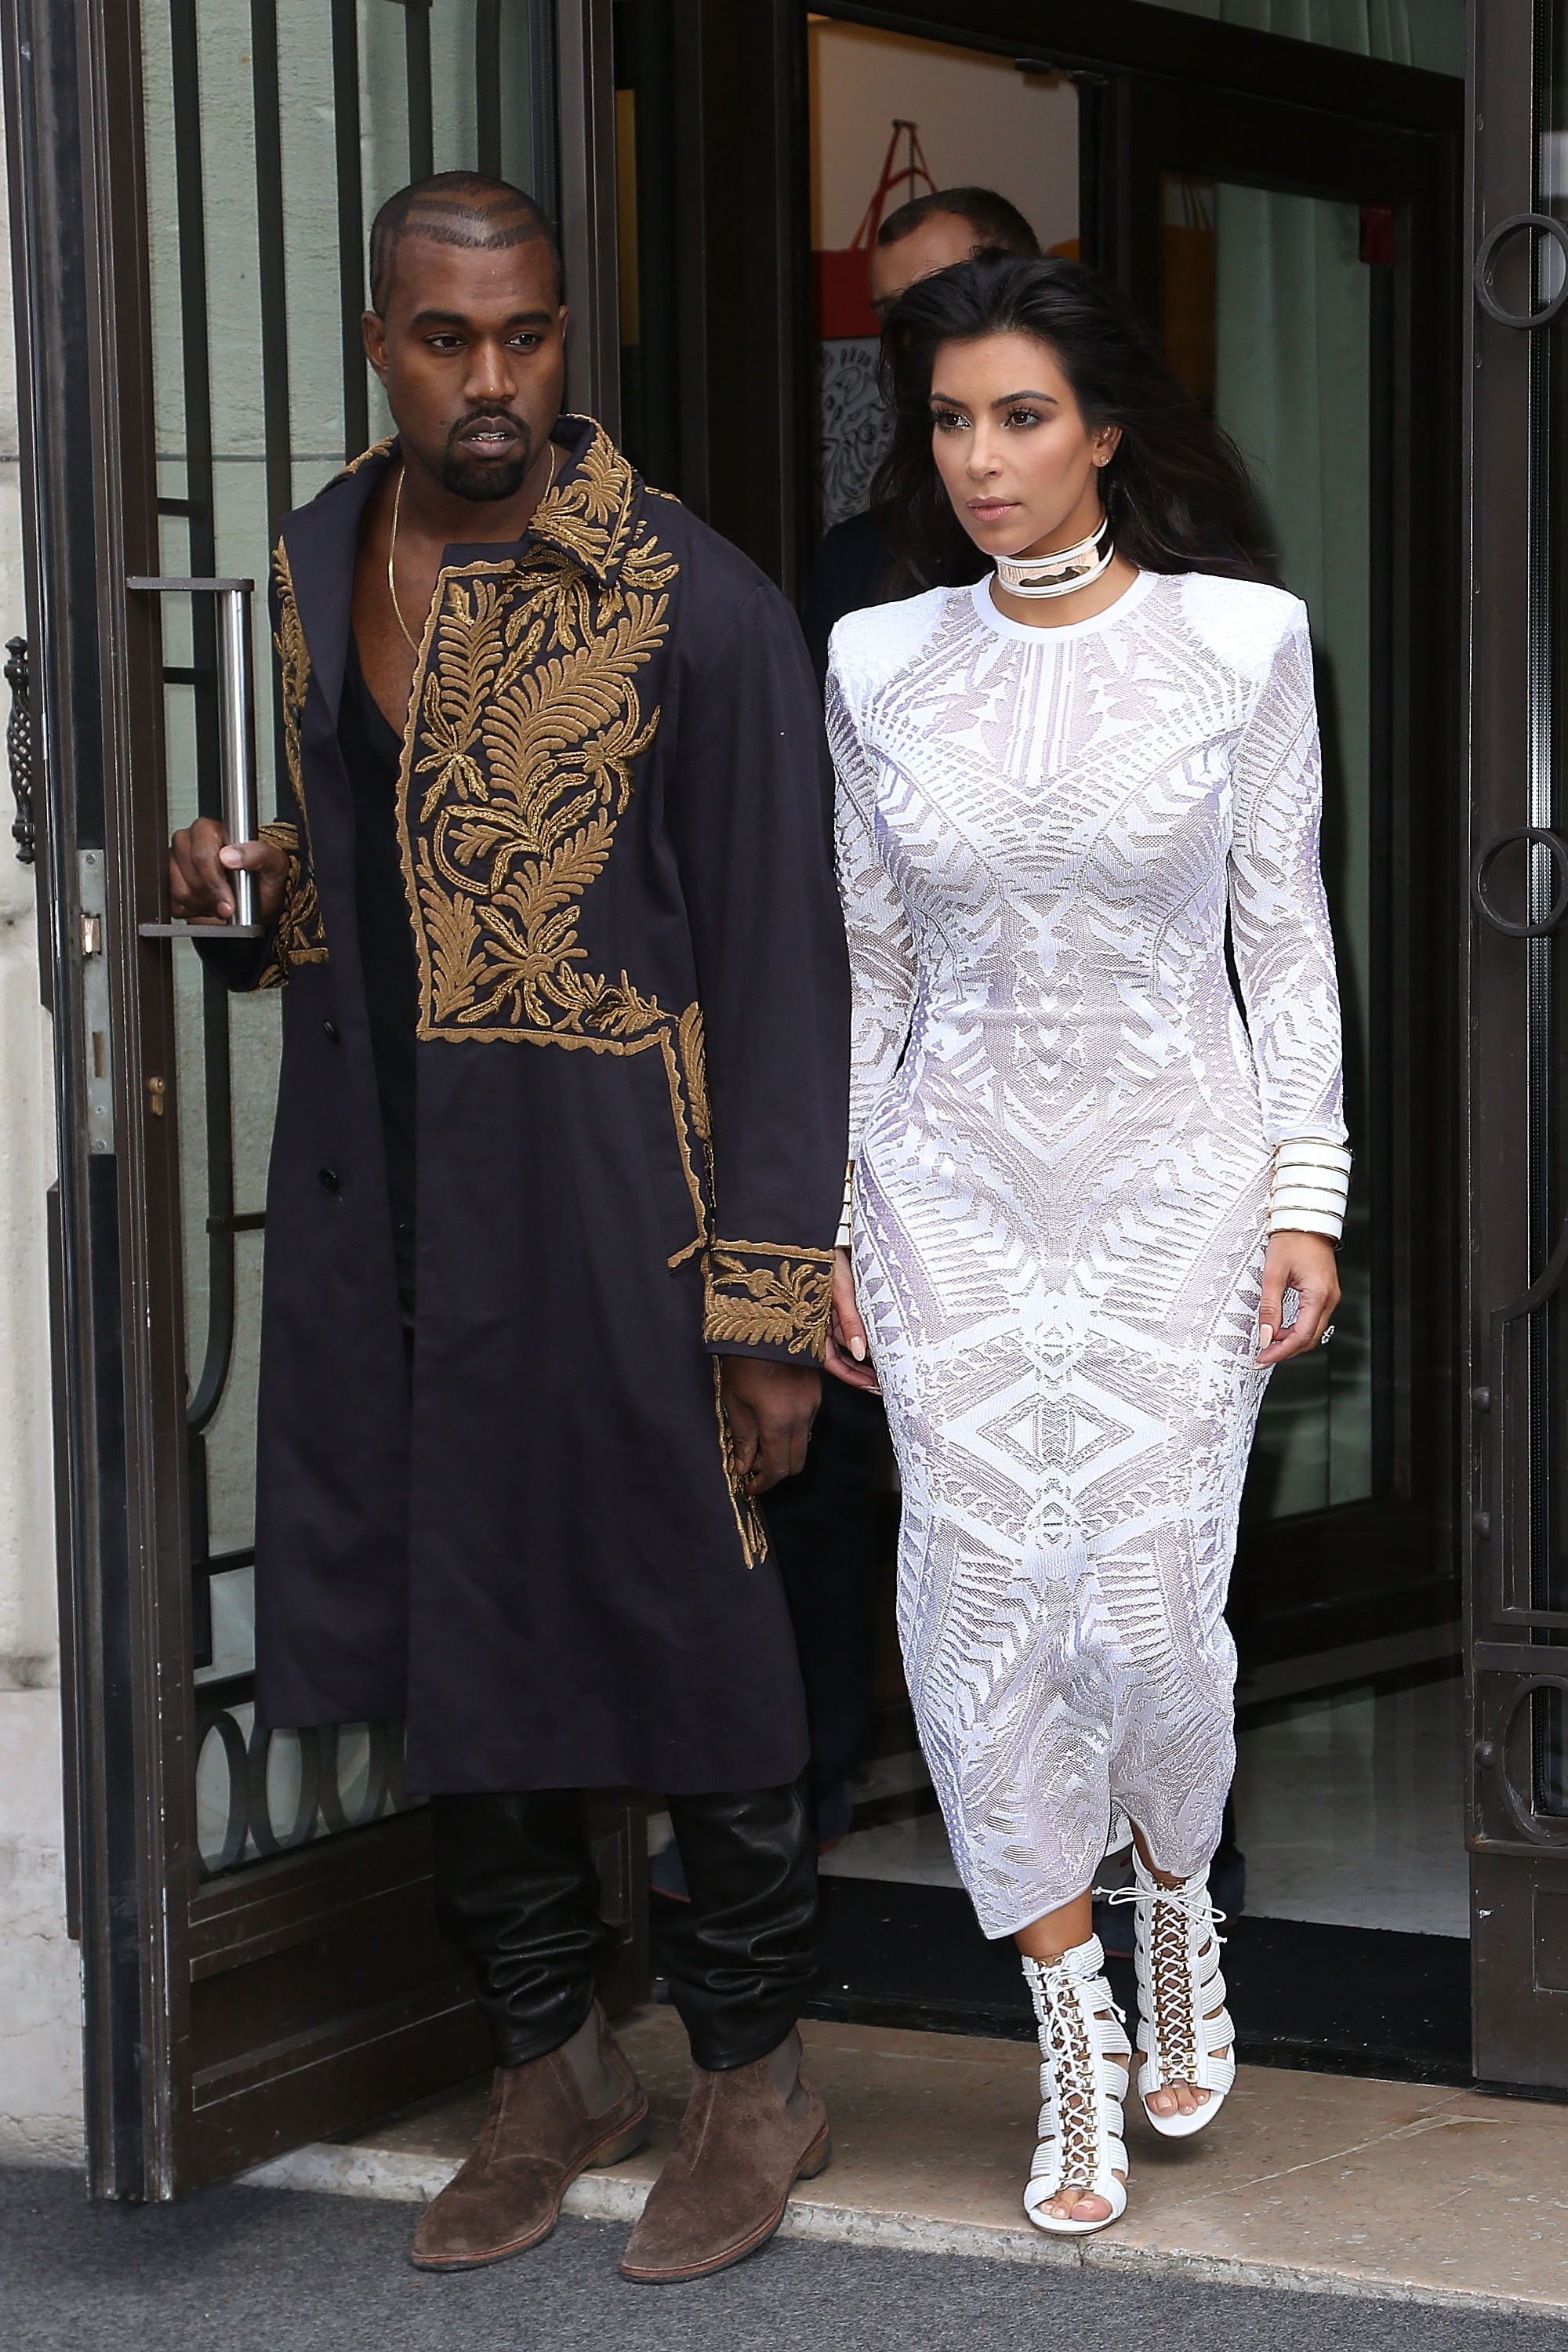 Kim Kardashian 35 And Kanye West 38 The 1 Designer Who Makes Stars Feel Sexy At Every Single Age Popsugar Fashion Photo 20